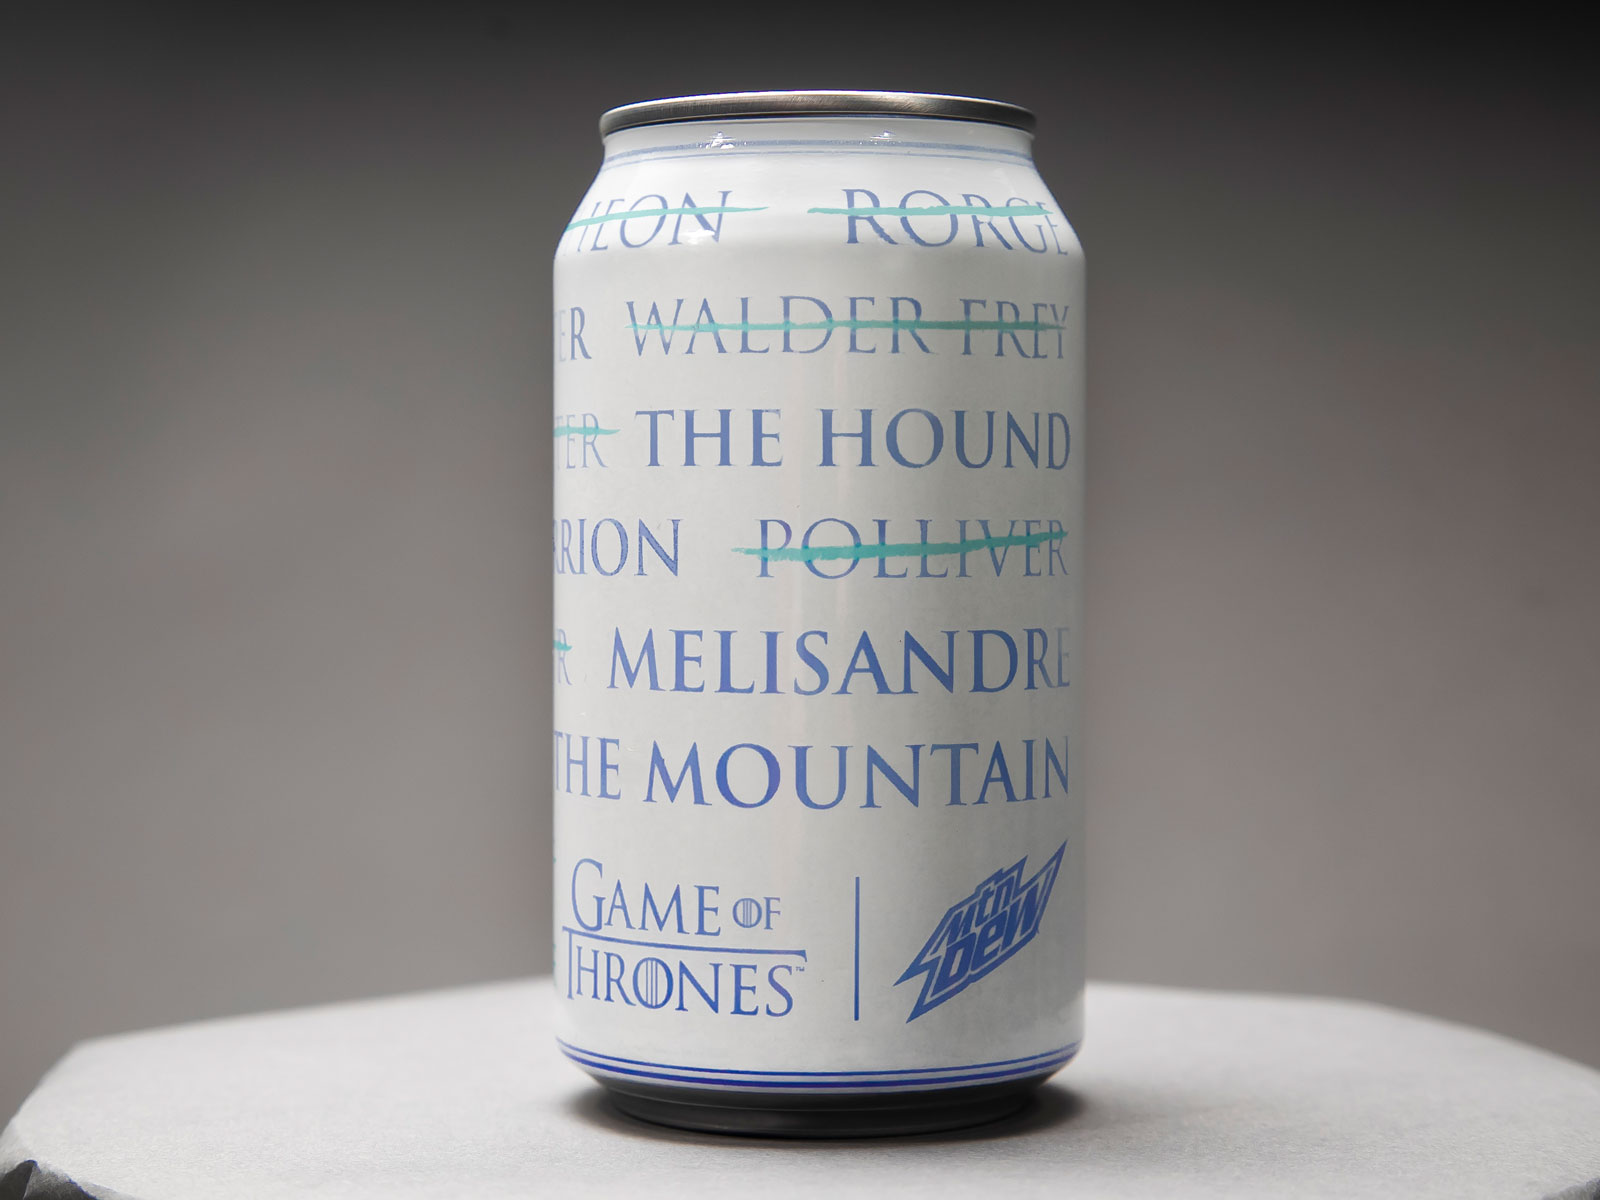 Mtn Dew Game of Thrones